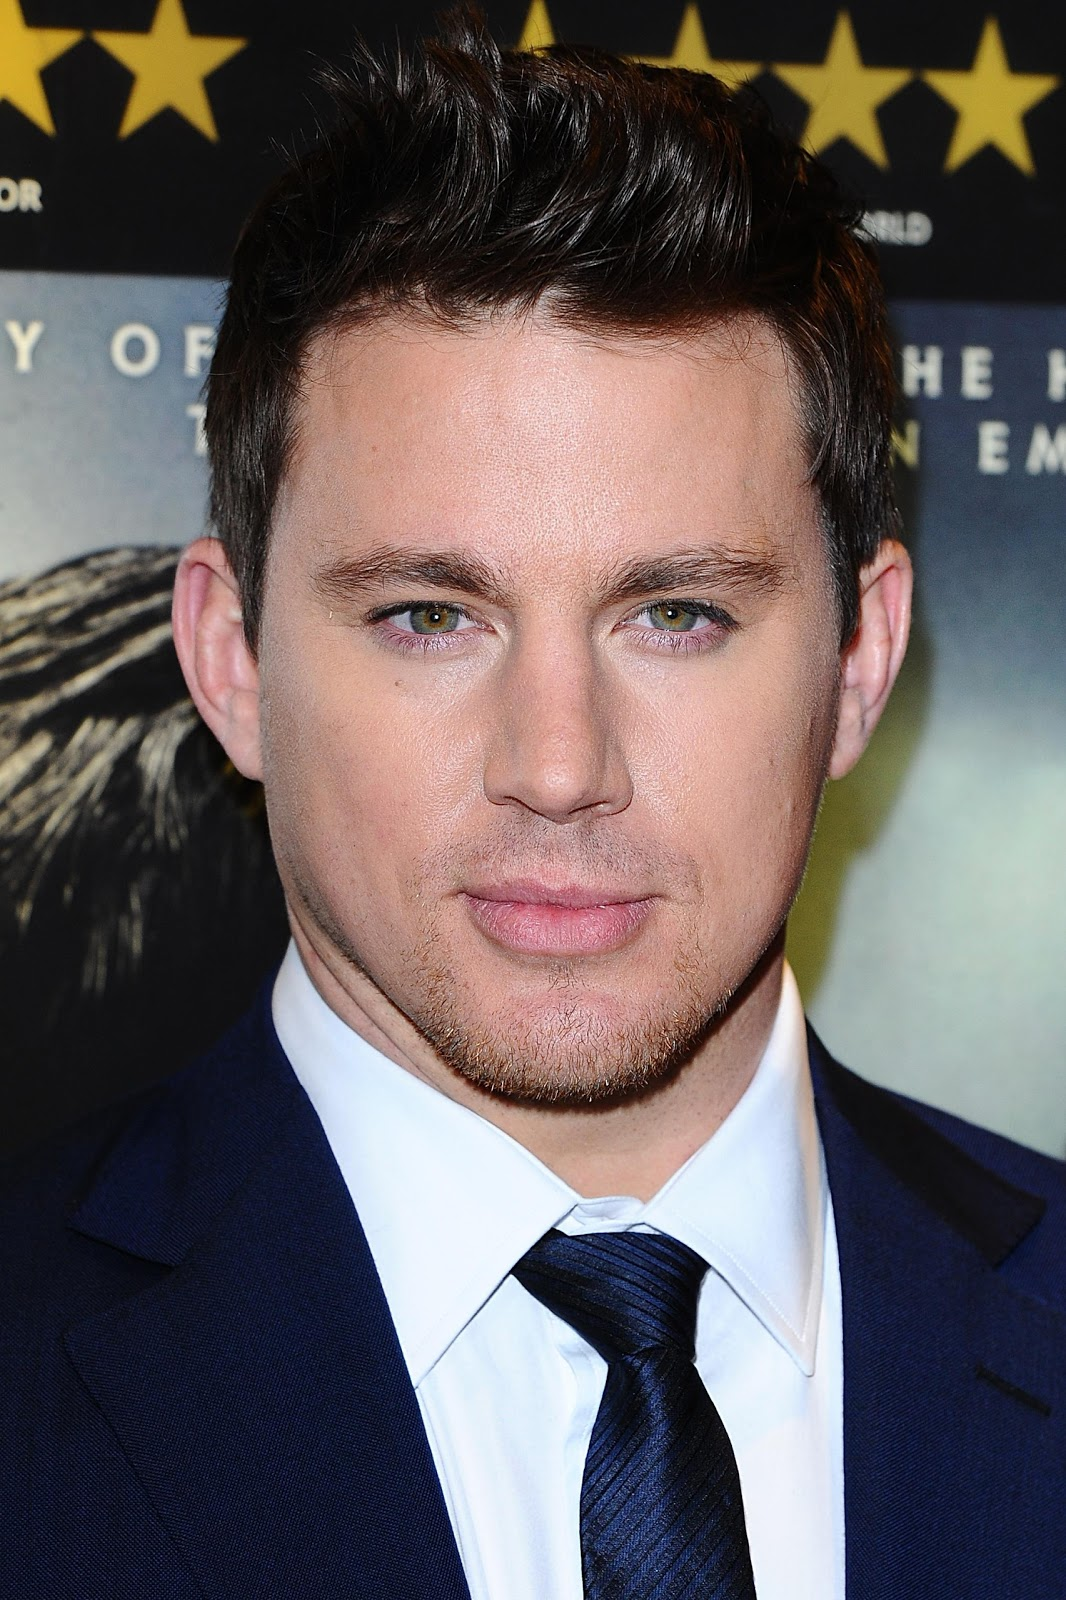 Channing Tatum Profile Channing Tatum